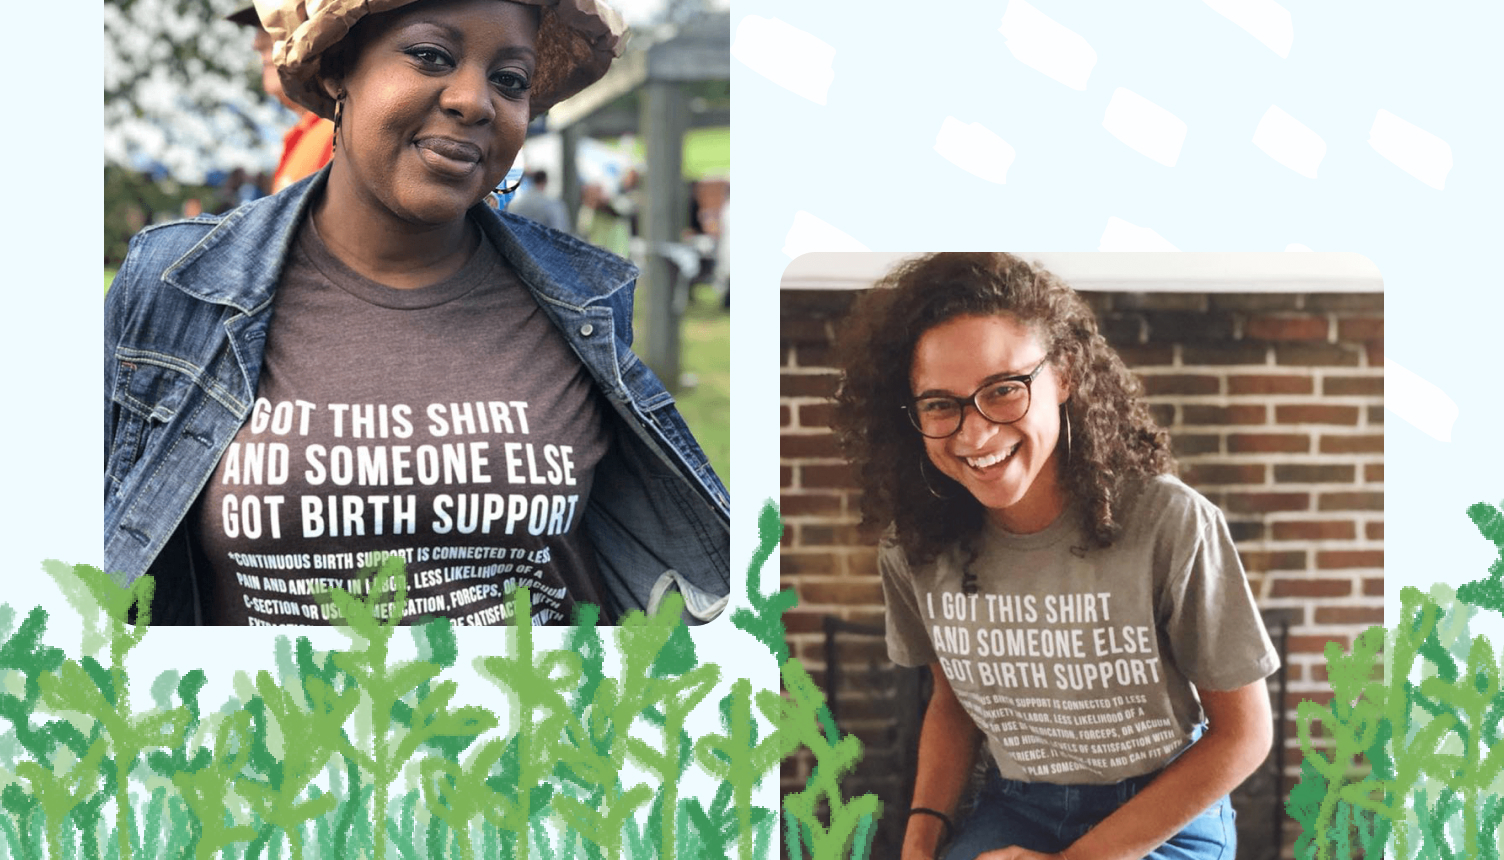 Two women wearing t-shirts that support a local charity